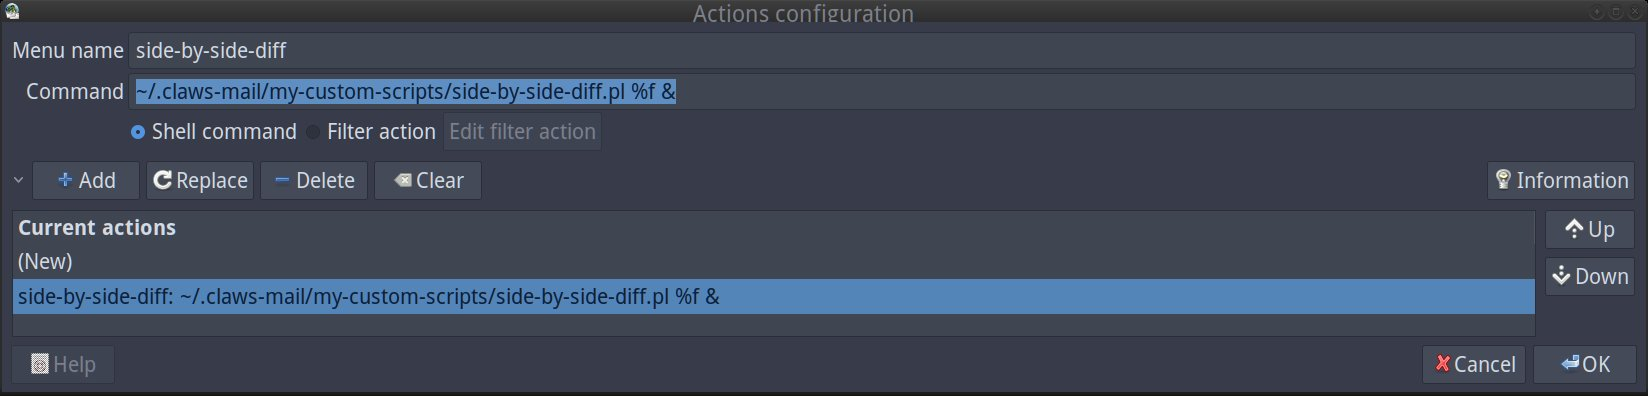 creating action for side-by-side-diffs